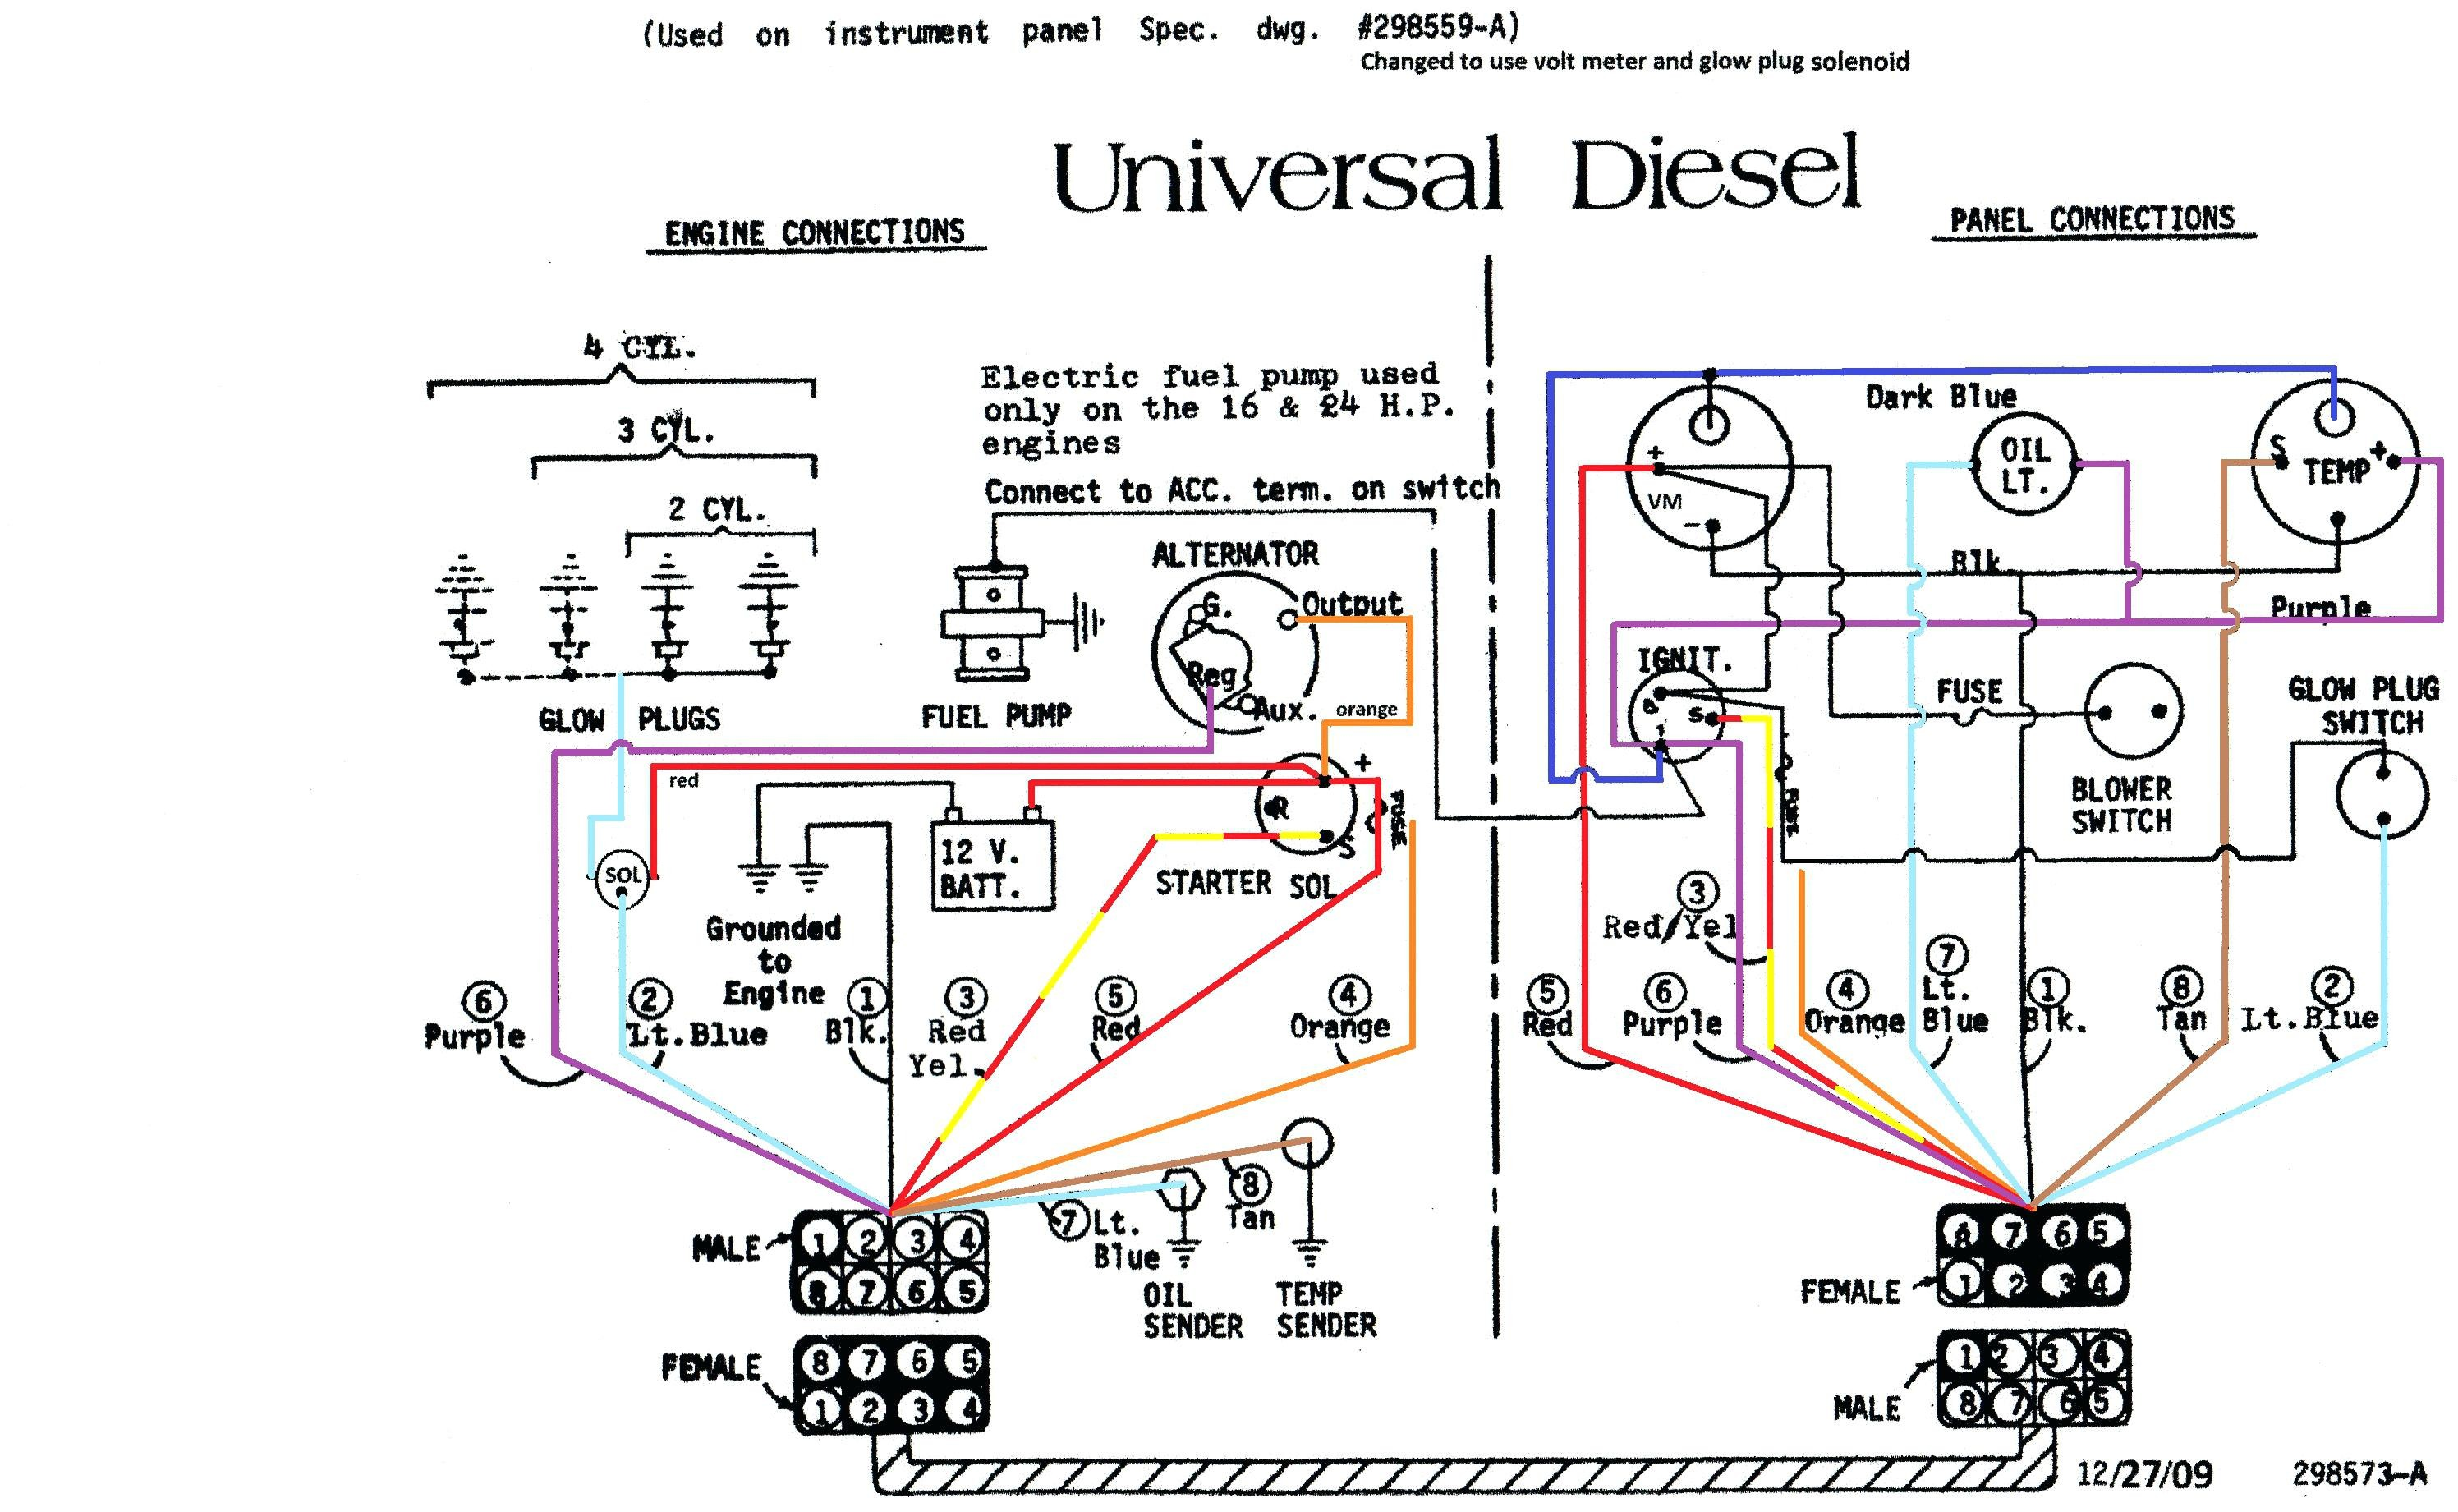 Dixie Chopper Parts Diagram Dixie Chopper Wiring Schematic Diagrams Engine Harness Color Diagram Of Dixie Chopper Parts Diagram